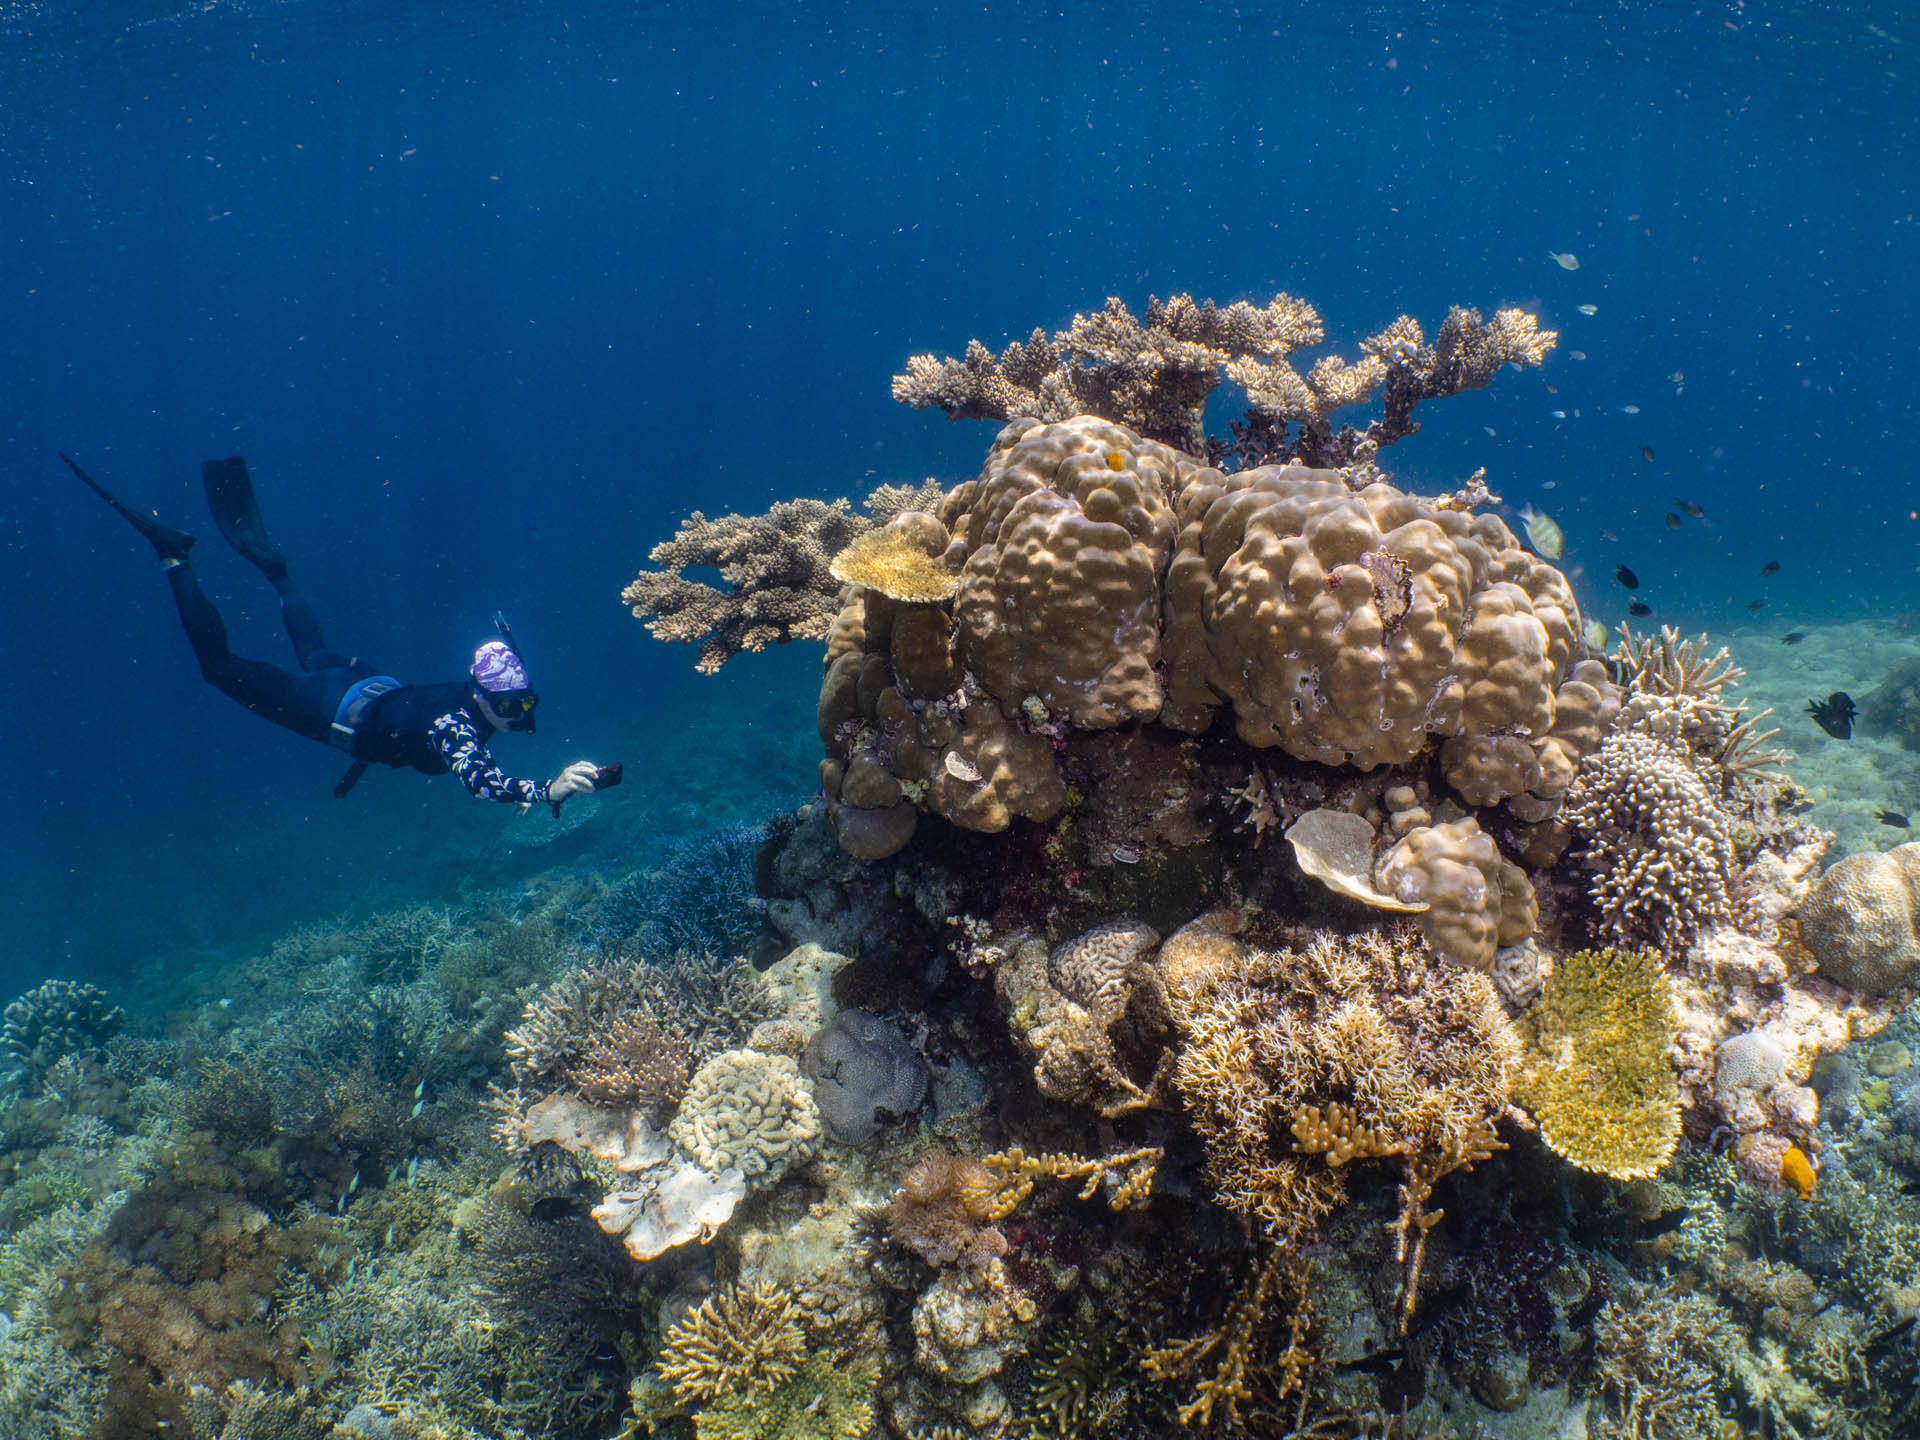 snorkeler diving down to photograph coral reef